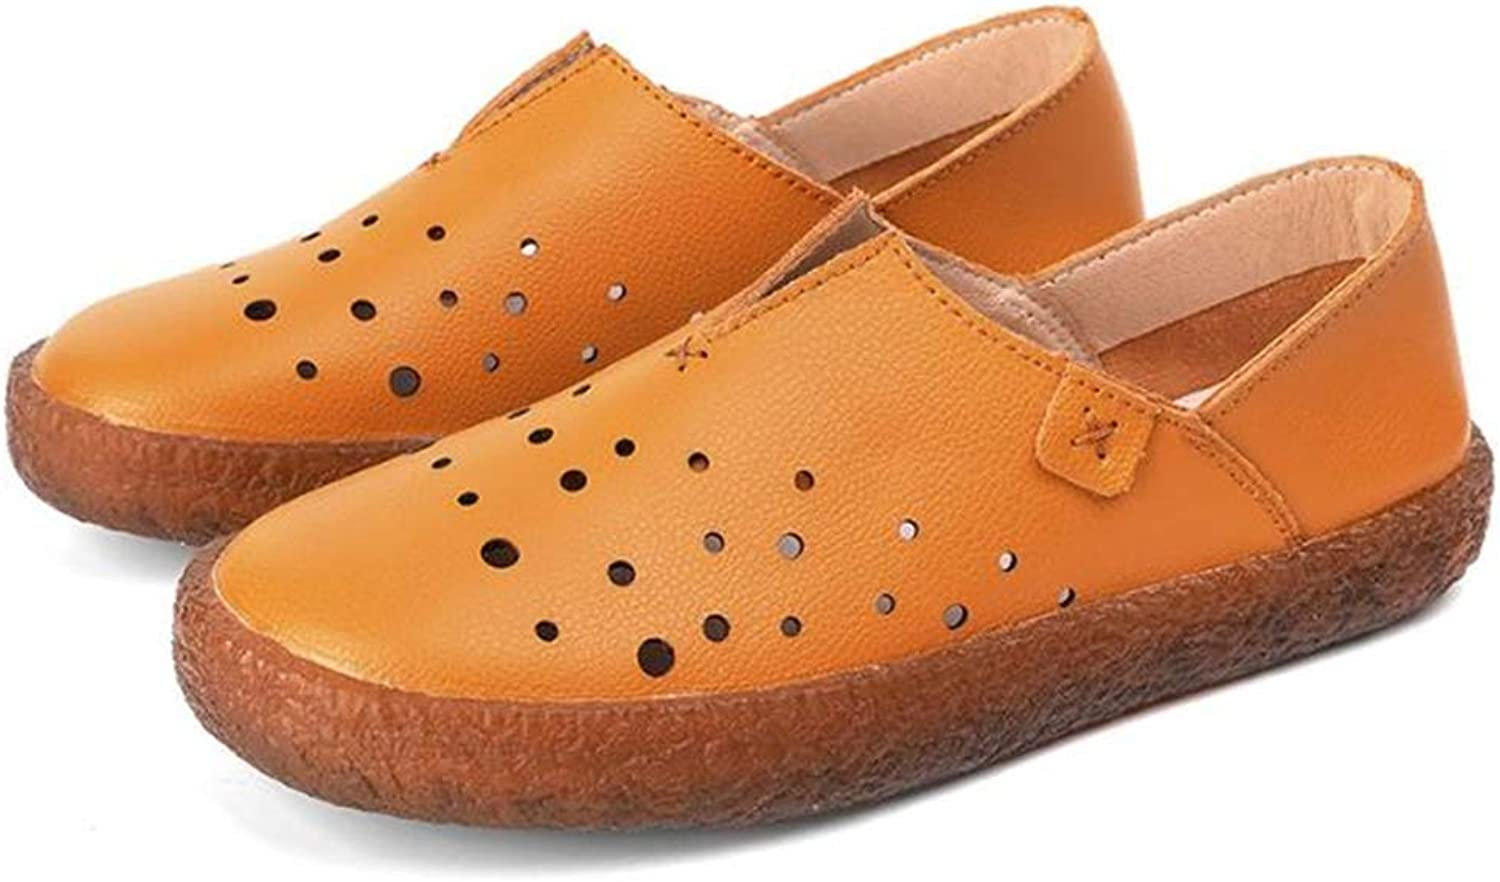 MOREMOO Women's Breathable Soft Leather Loafers Comfort Flats Driving shoes Indoor Outdoors Slip-on